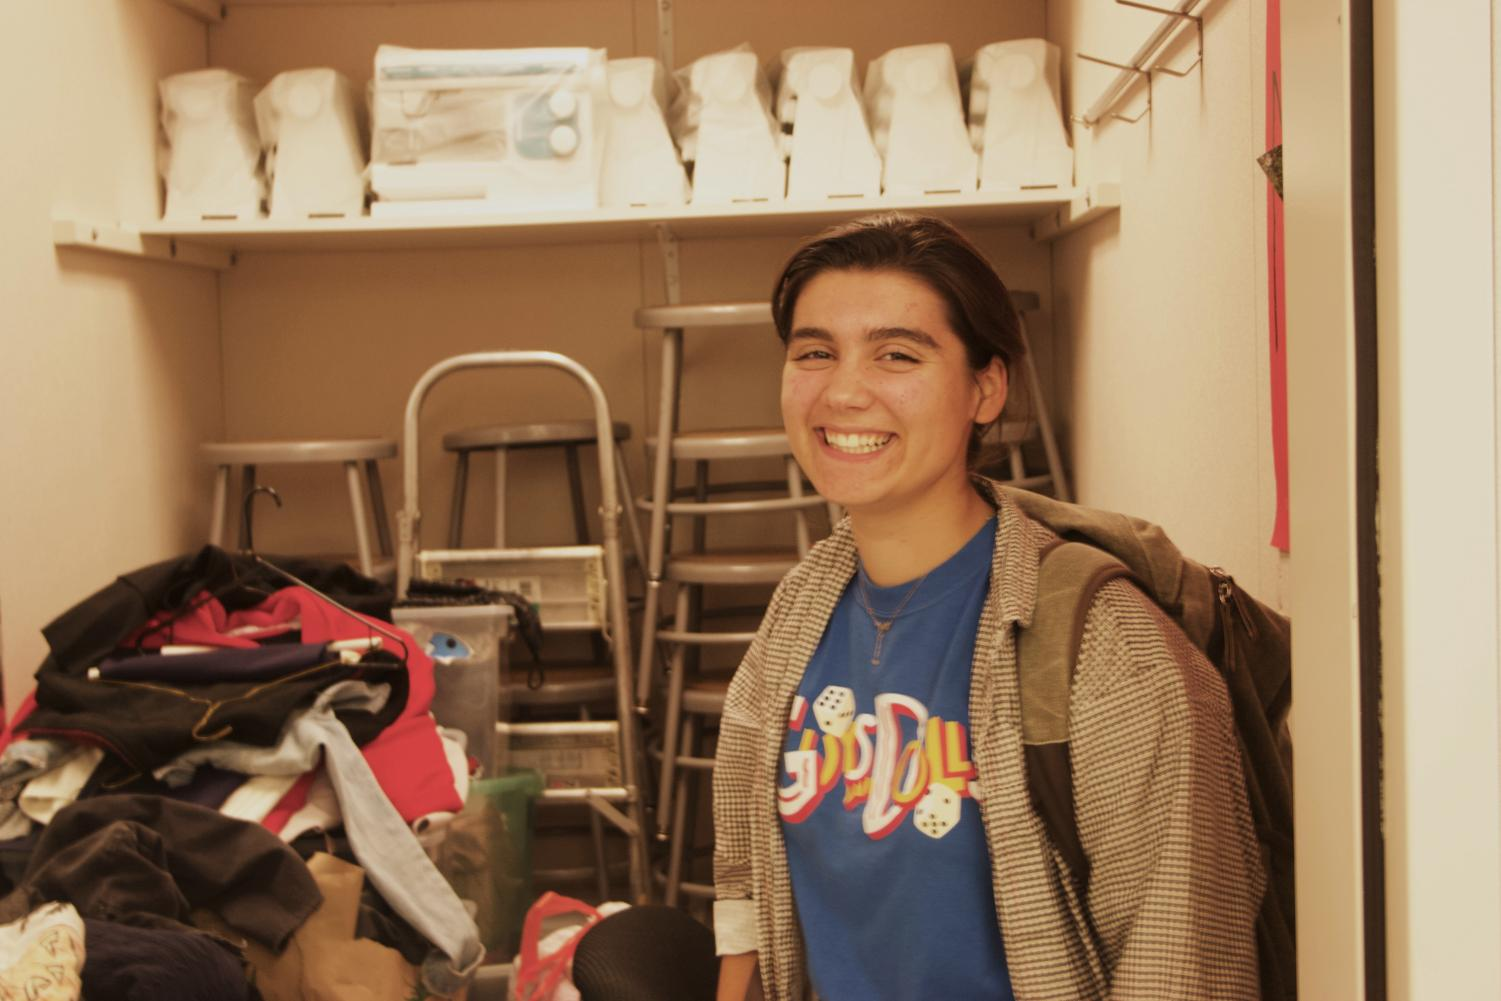 Senior Caelen Chamberlain poses in front of clothes that students donated, in preparation for the clothing swap on Nov. 18-22.